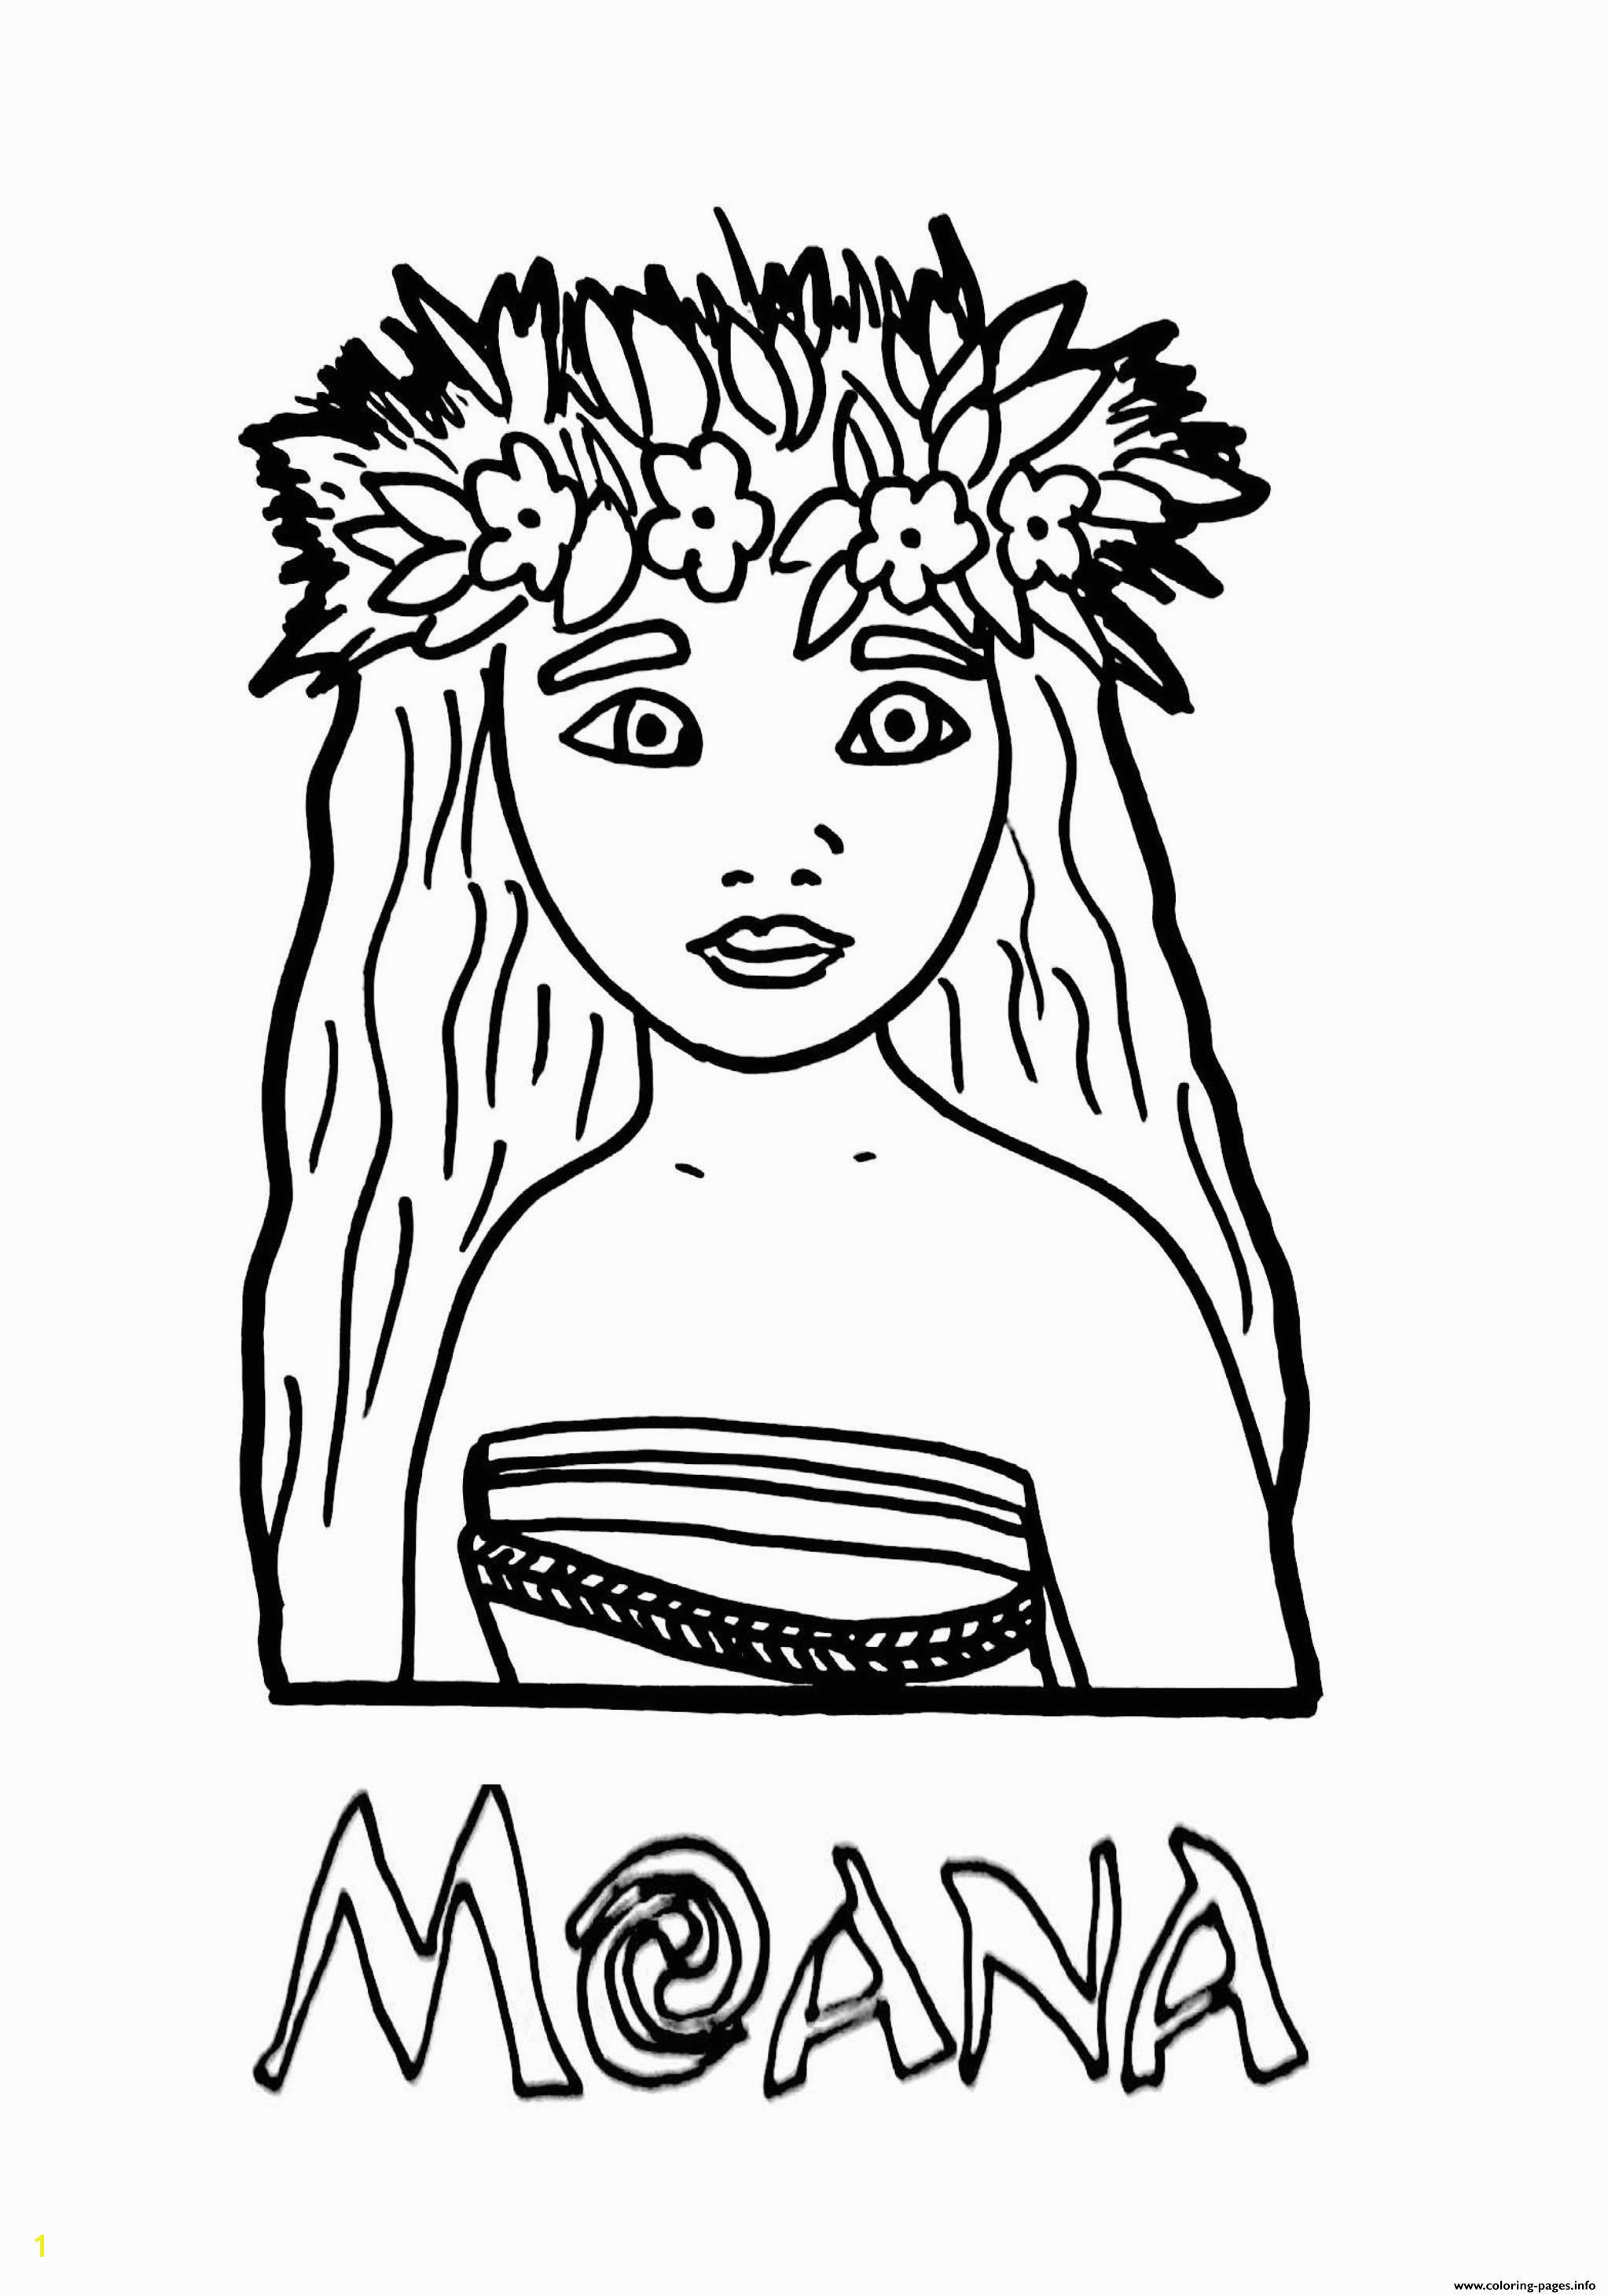 coloring pagesfo moana princess printable coloring pages book